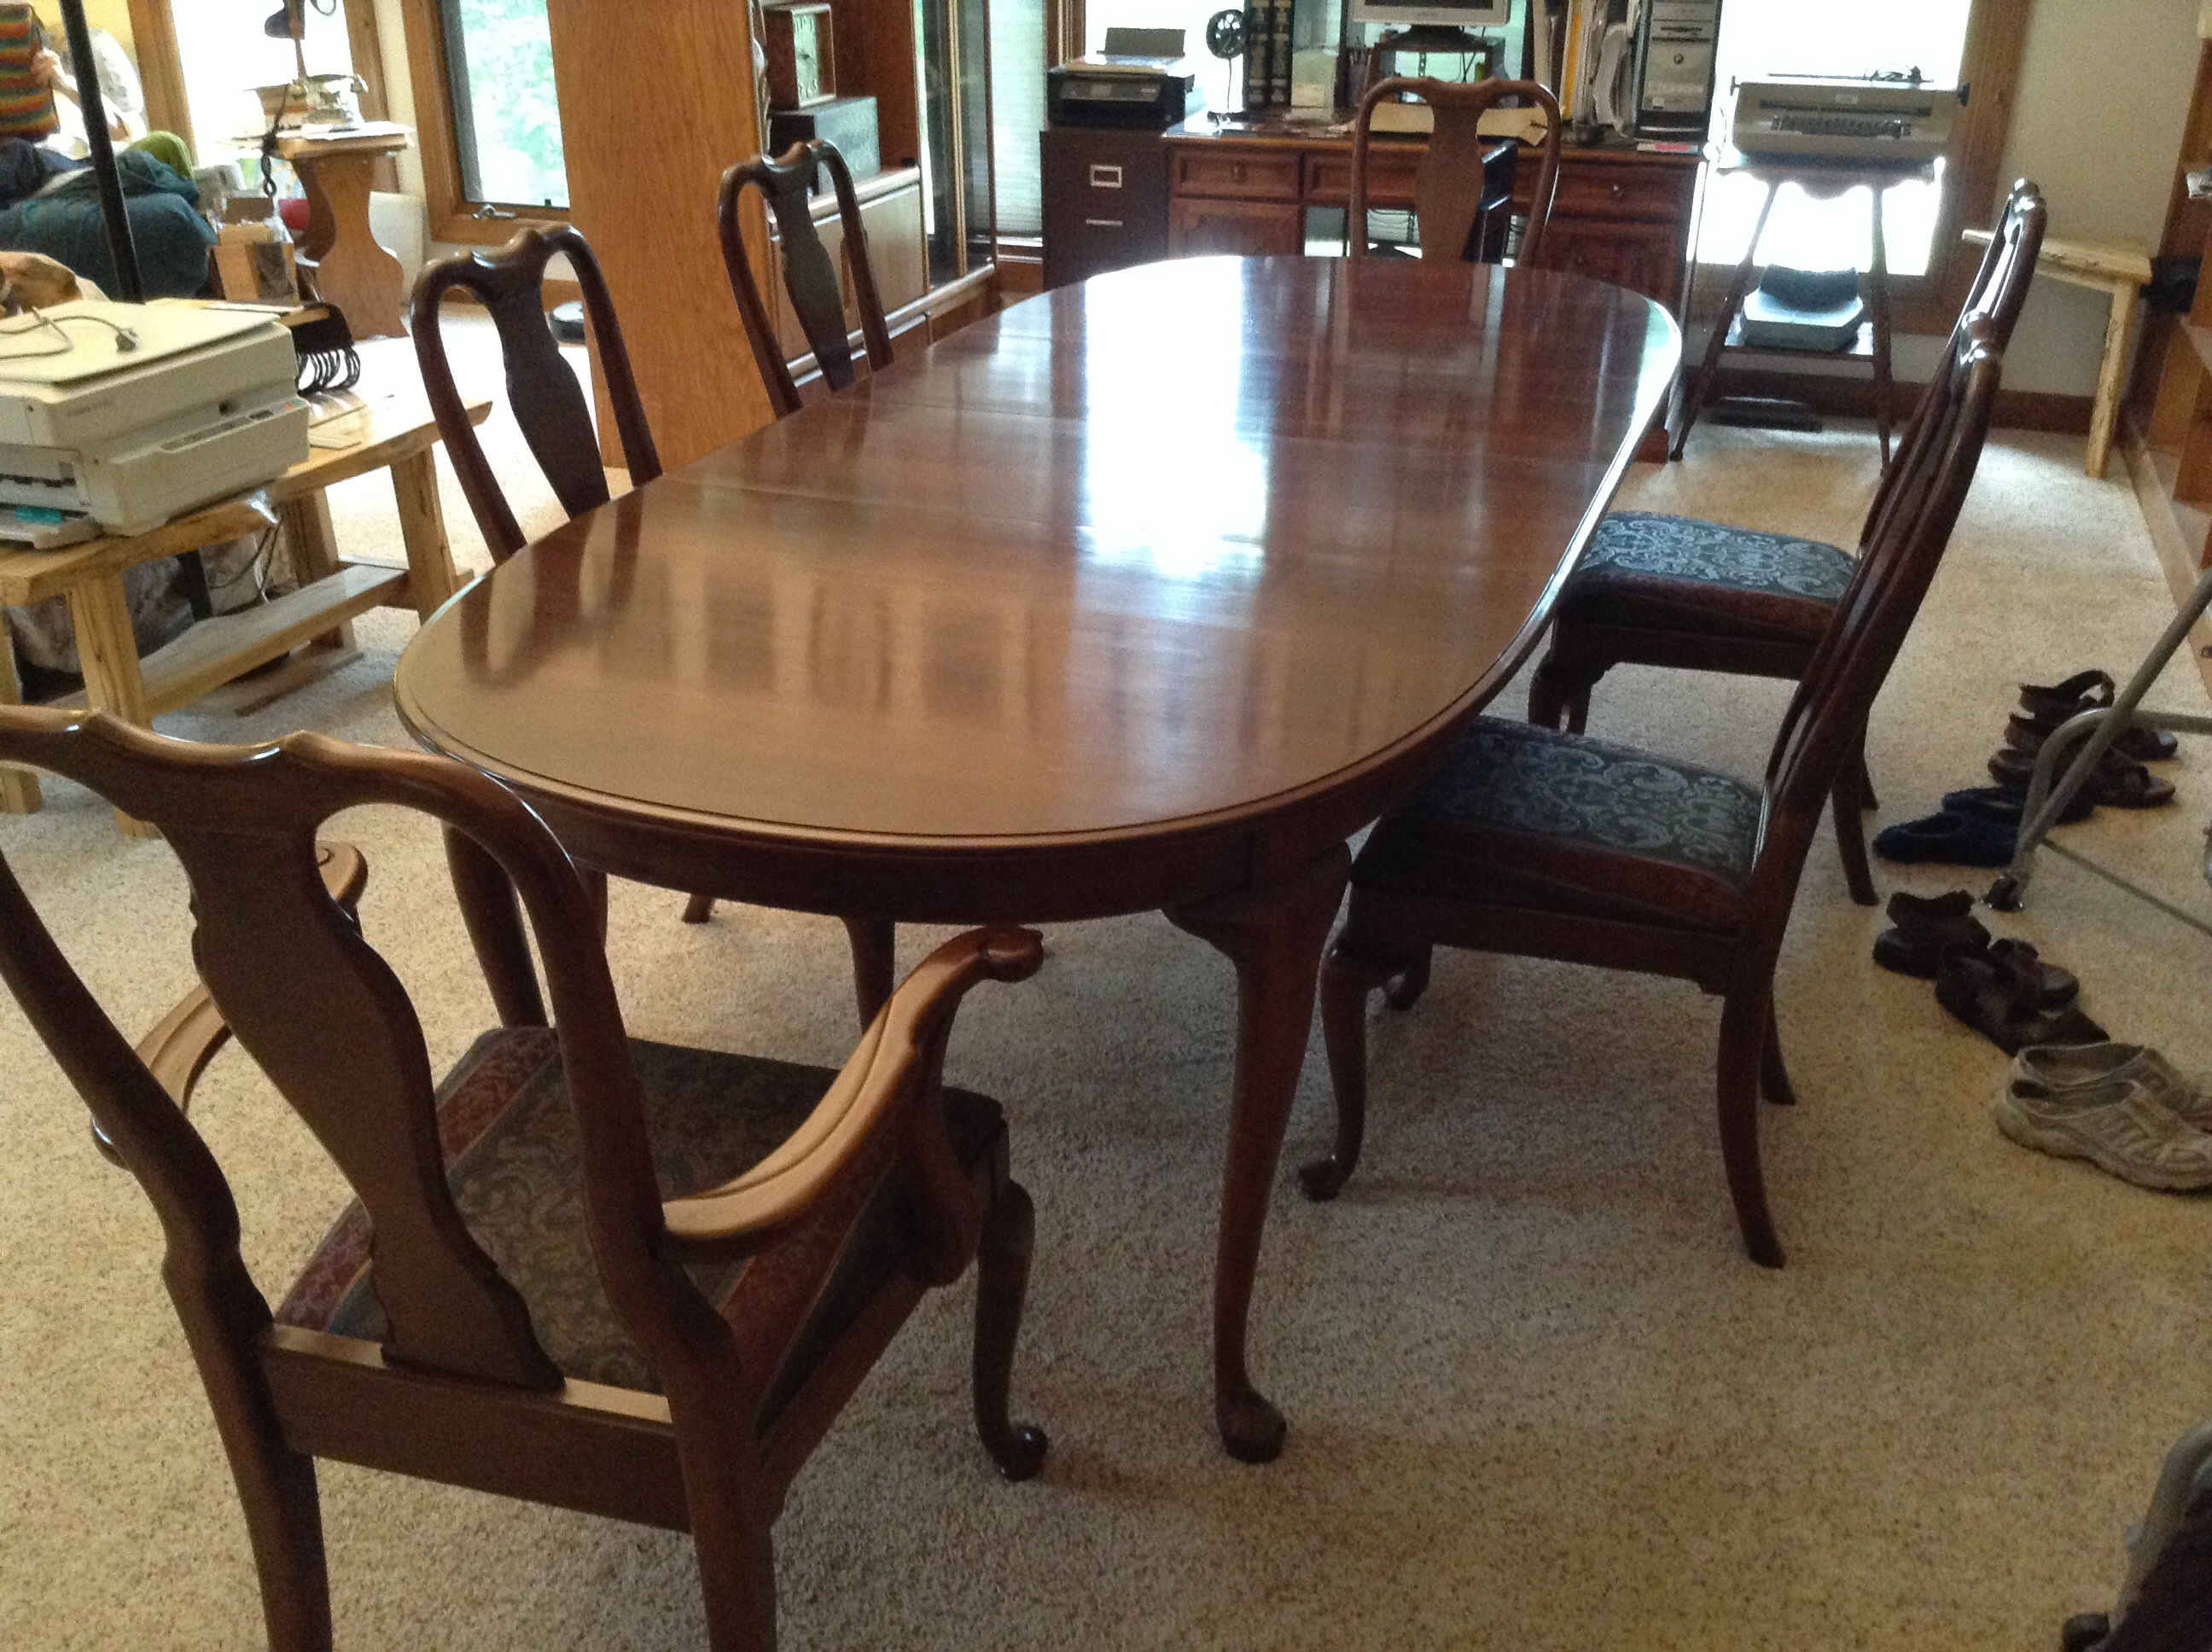 kling colonial dining room set w 6 chairs antique appraisal